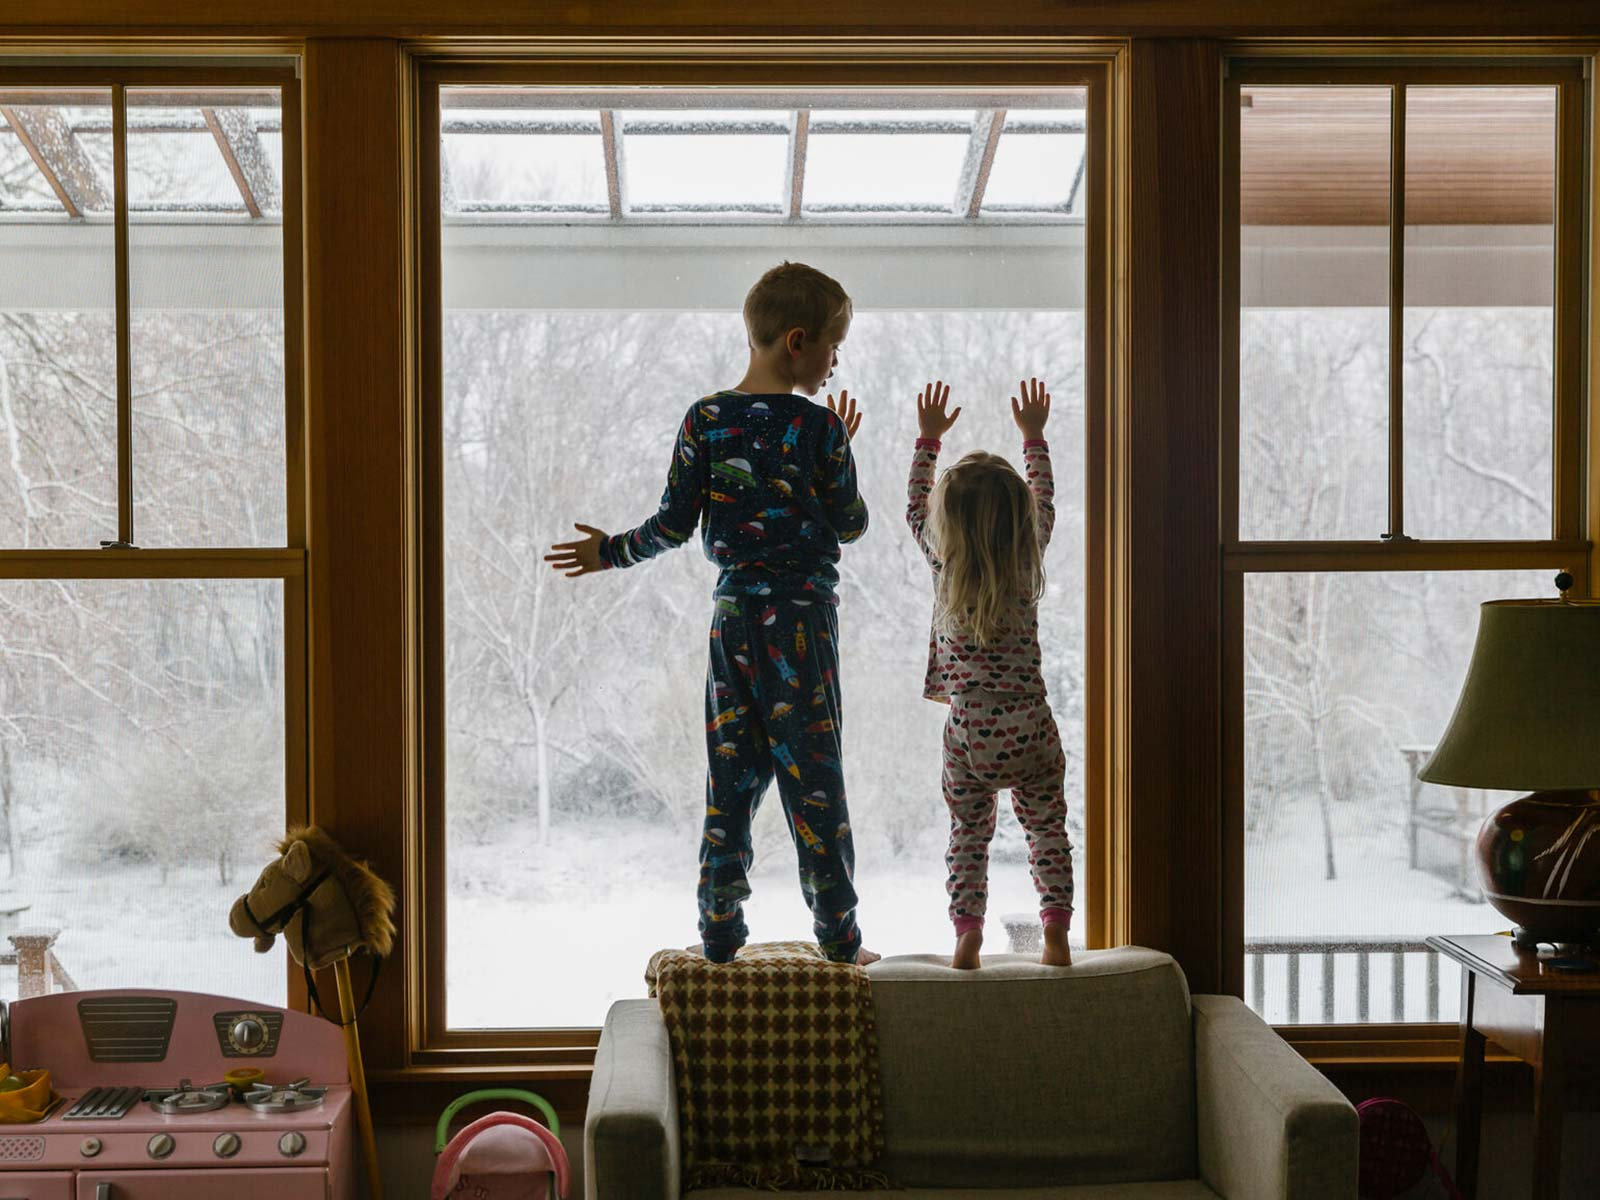 Two children standing on the window ledge in the living room, looking out the window as it snows